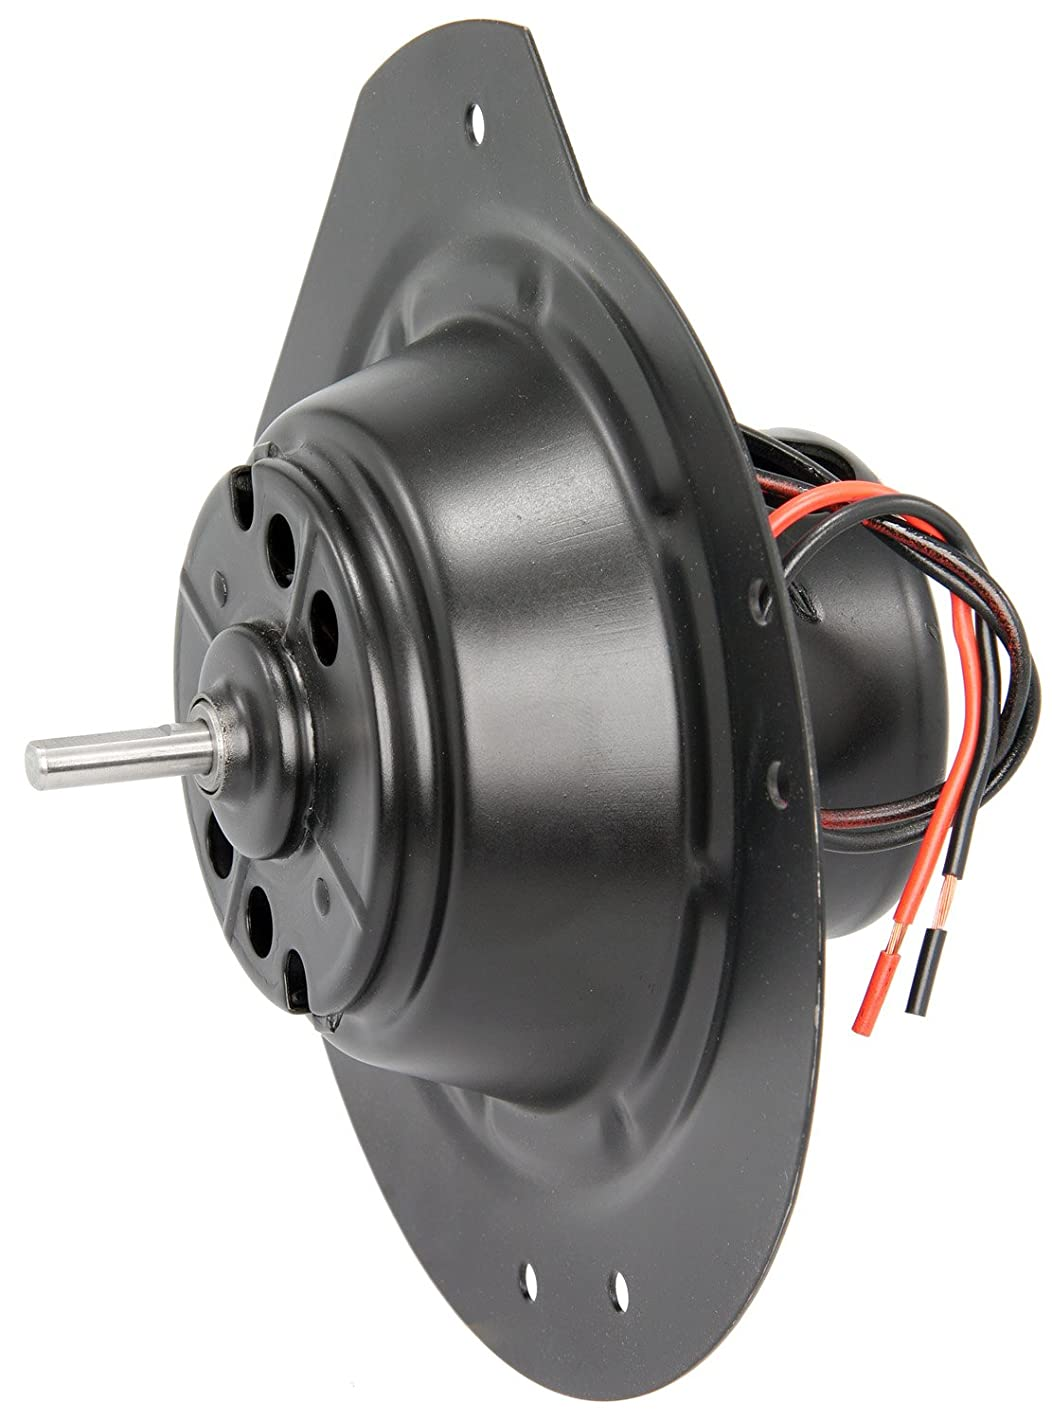 Four Seasons/Trumark 35571 Blower Motor without Wheel